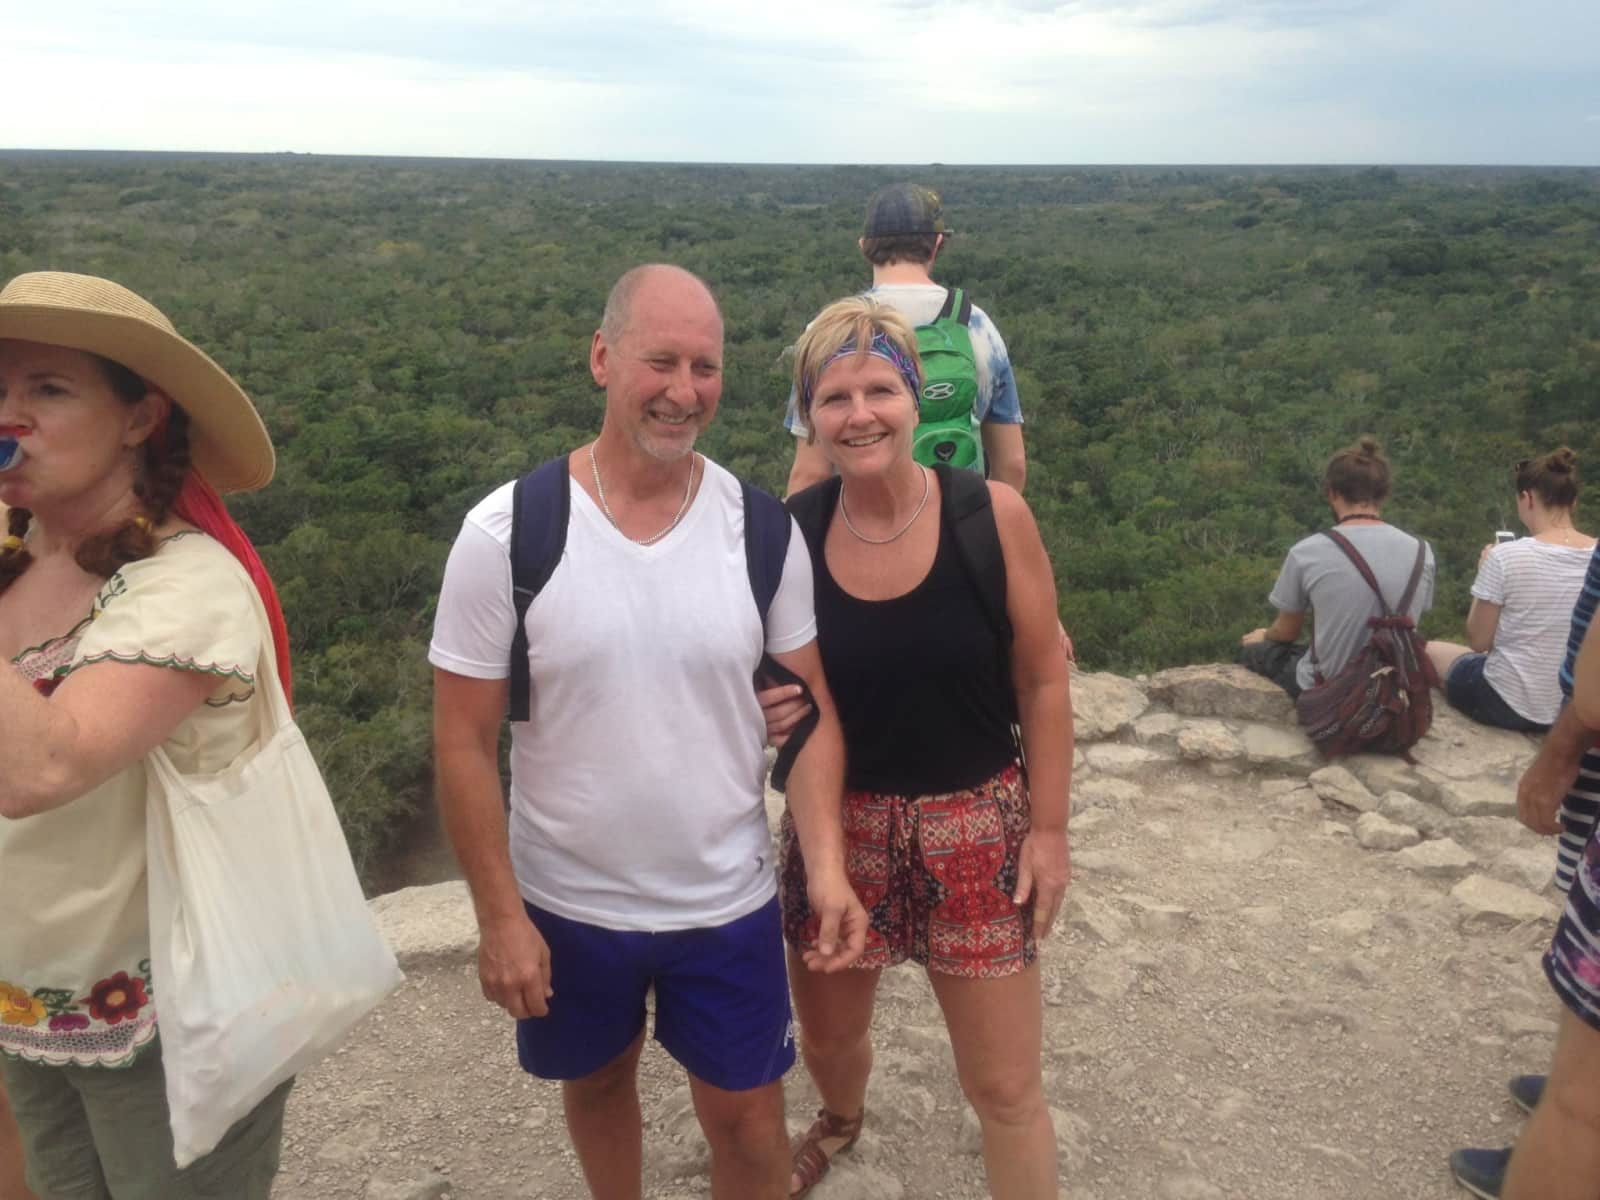 Janet & Wes from Winnipeg, Manitoba, Canada